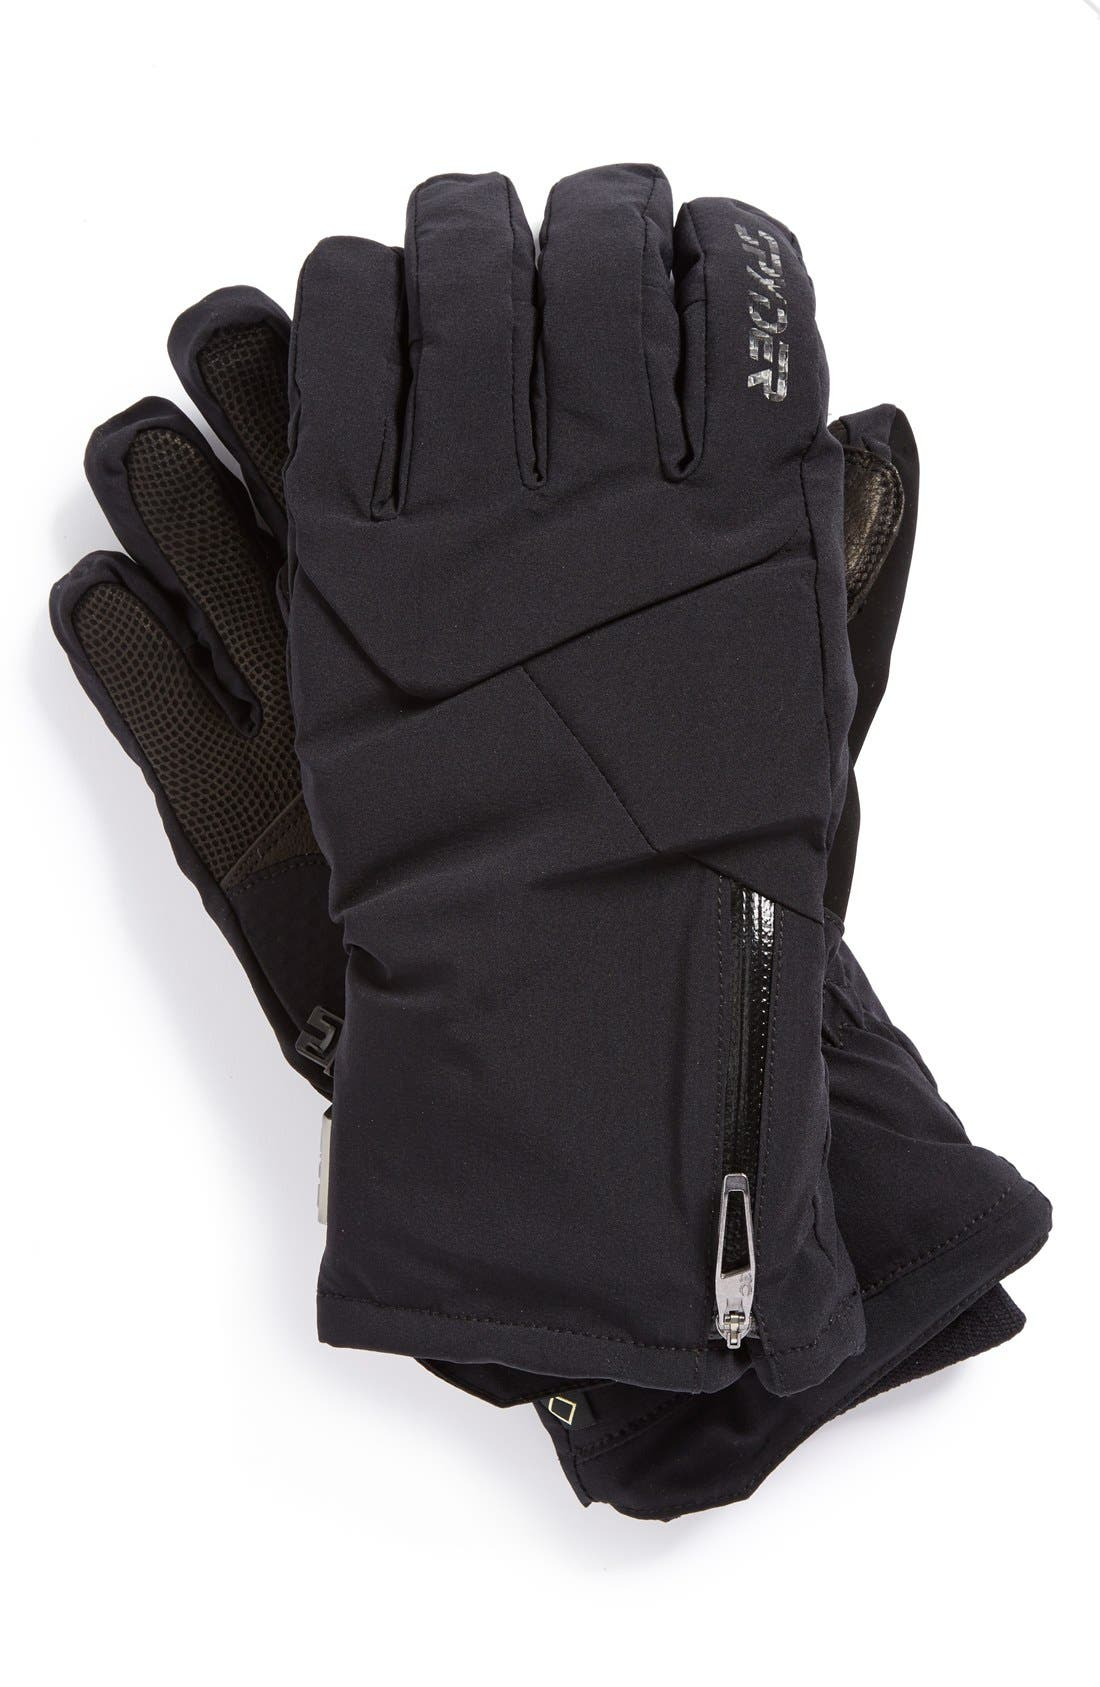 'Sestriere' Gore-Tex<sup>®</sup> Waterproof PrimaLoft<sup>®</sup> Insulated Ski Gloves, Main, color, 001